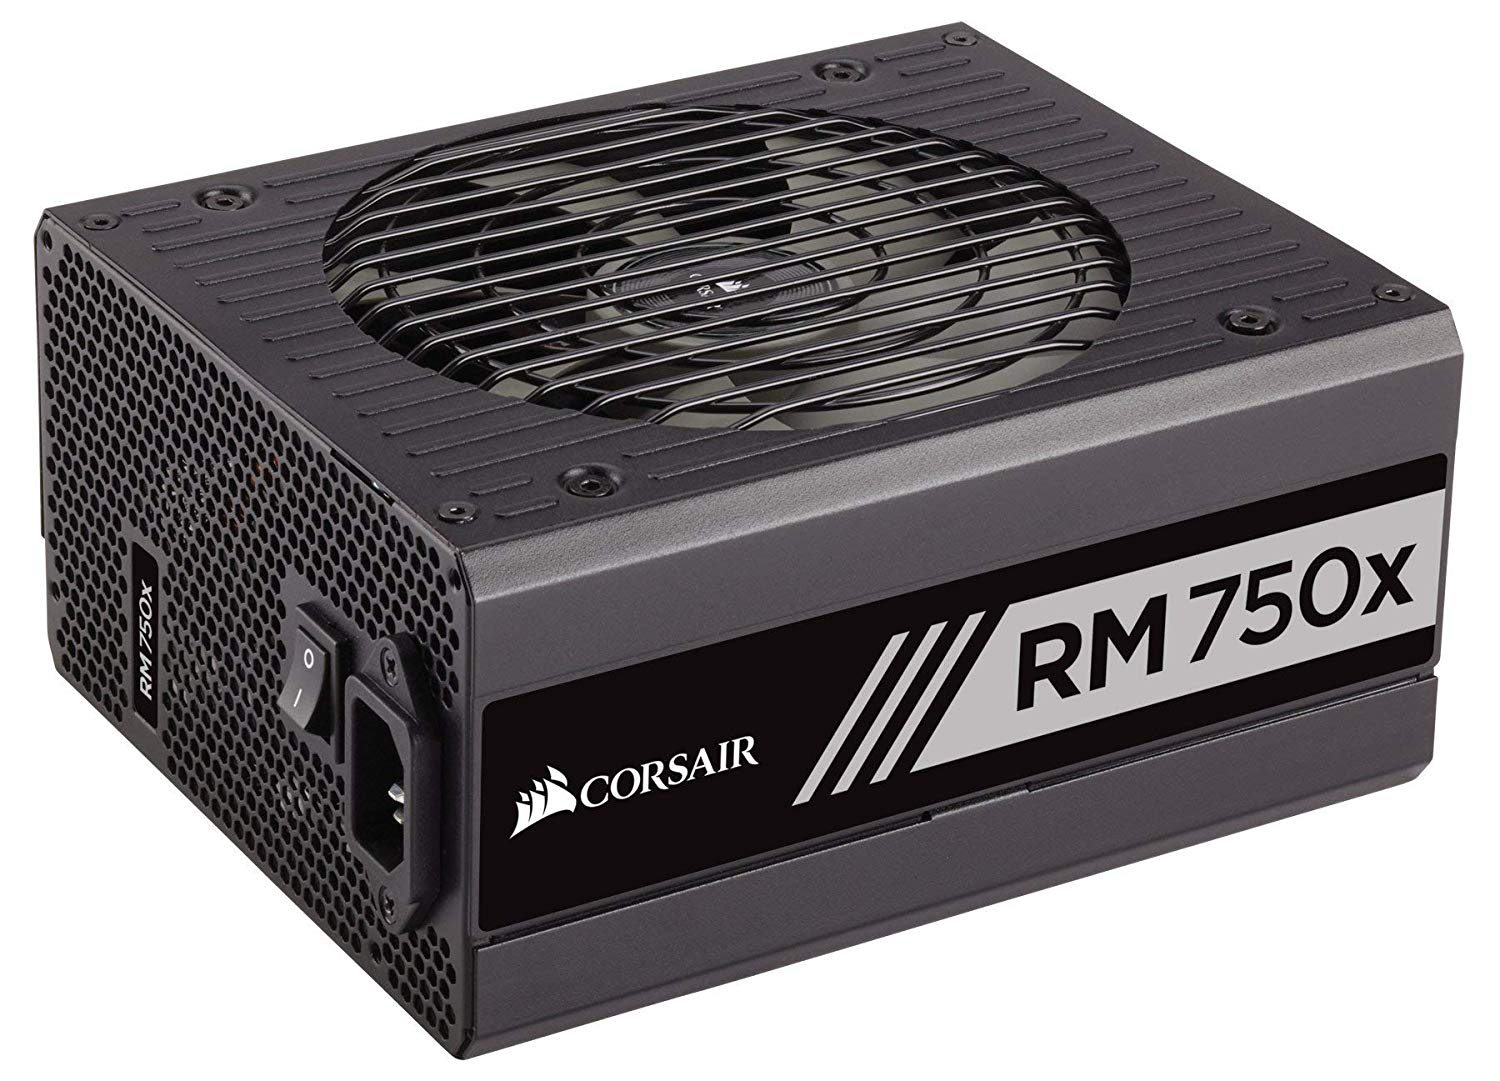 7 Power Supply - Best $1500 PC Build 2020